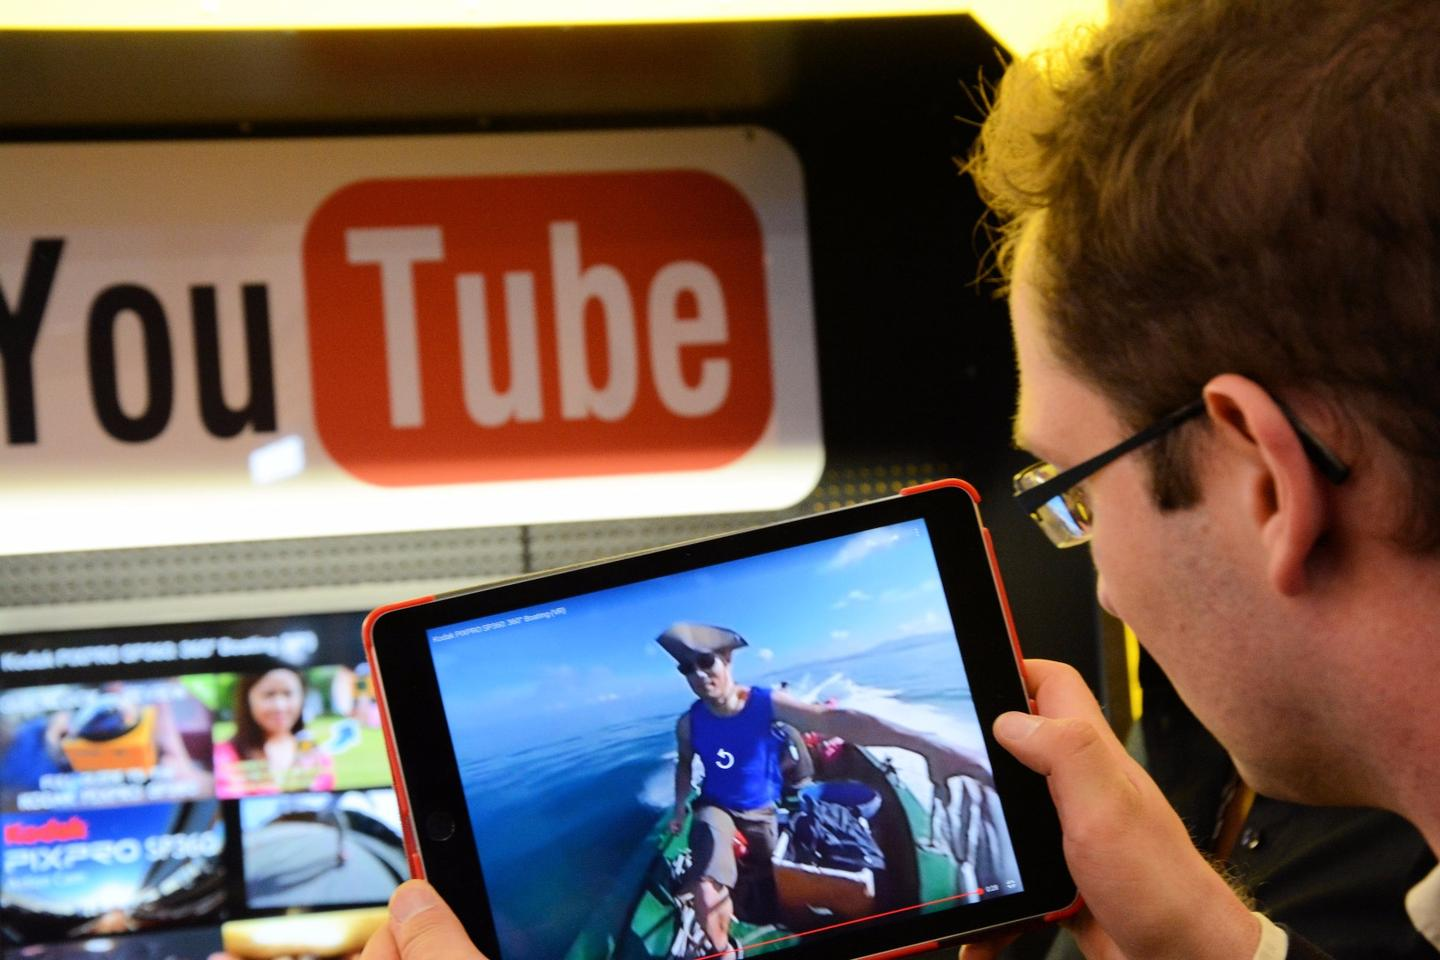 Viewing a 360-degree video on a tablet